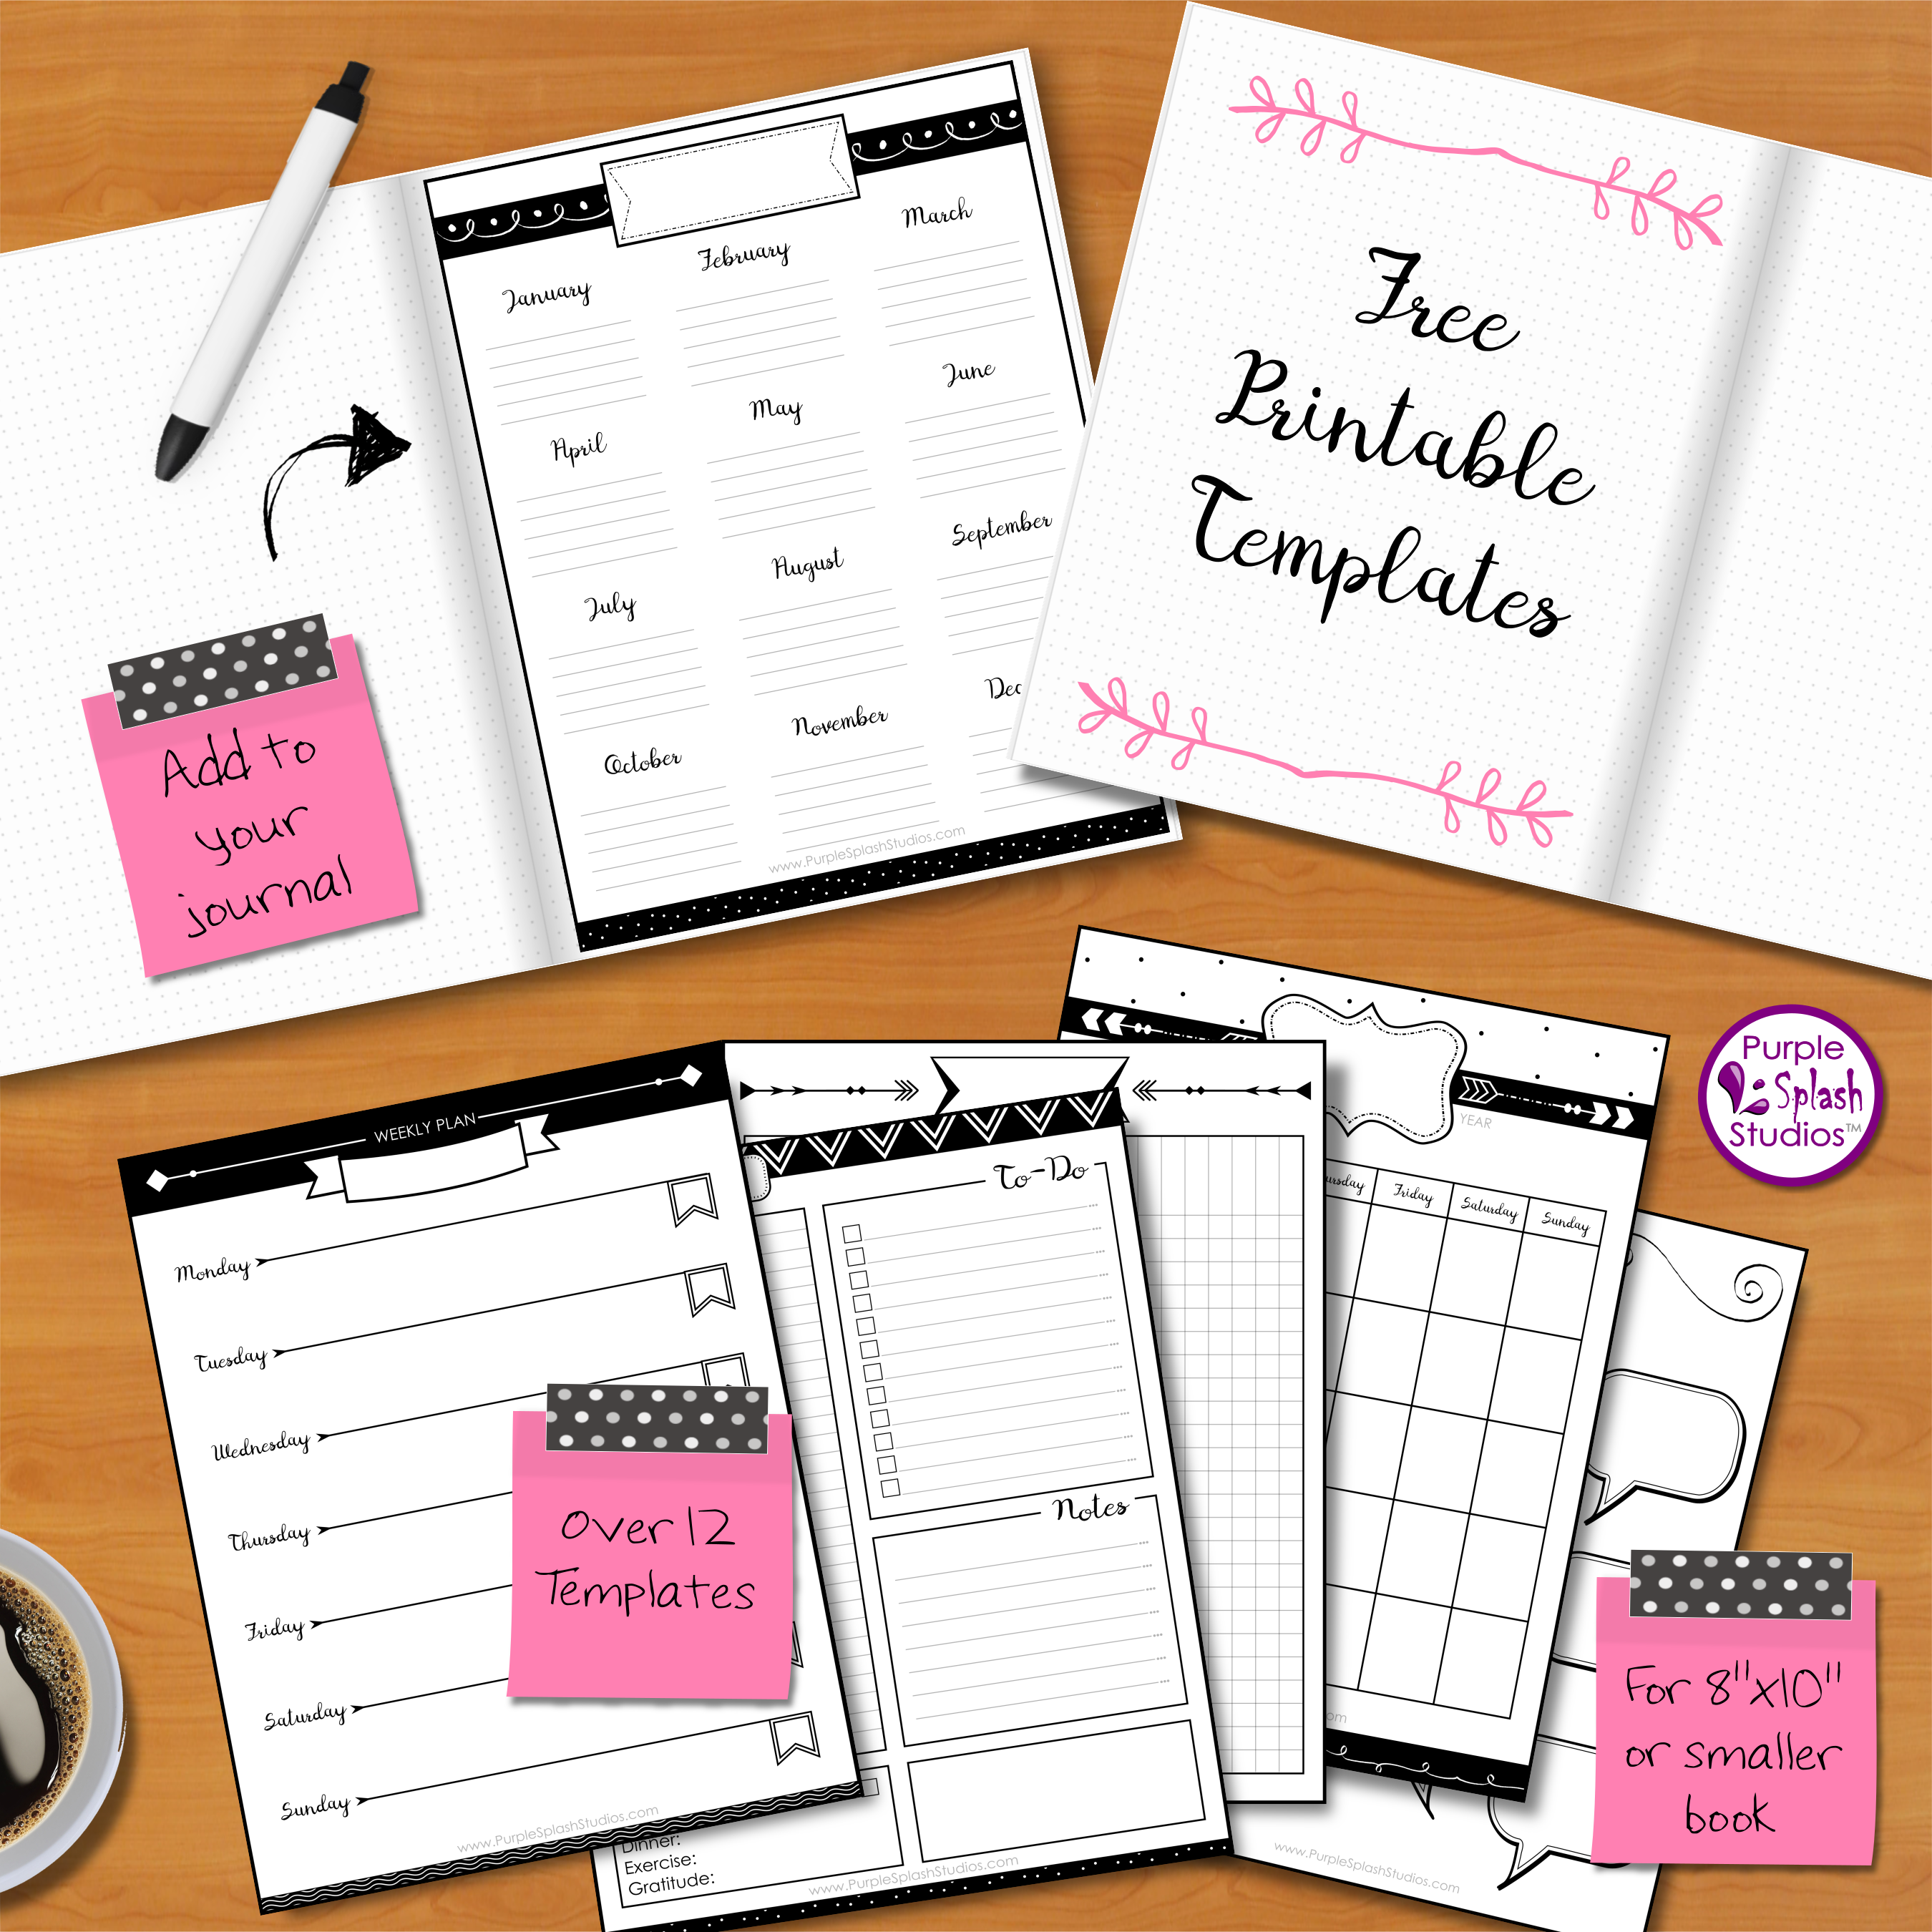 Free Printable Bullet Journal Templates Over 12 Layouts